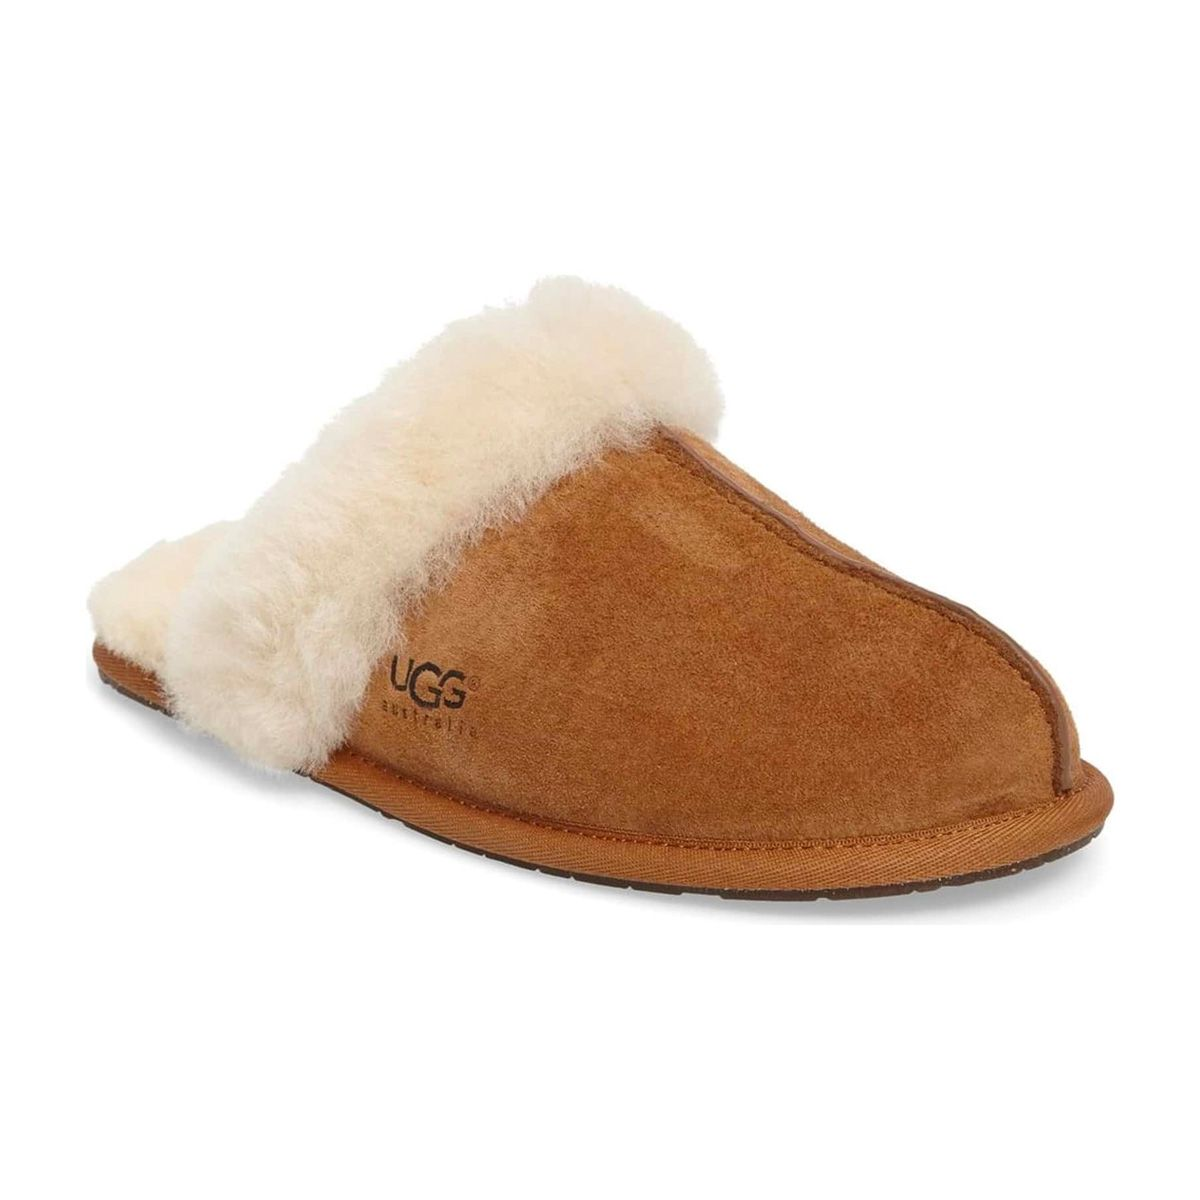 gifts for new parents ugg slippers